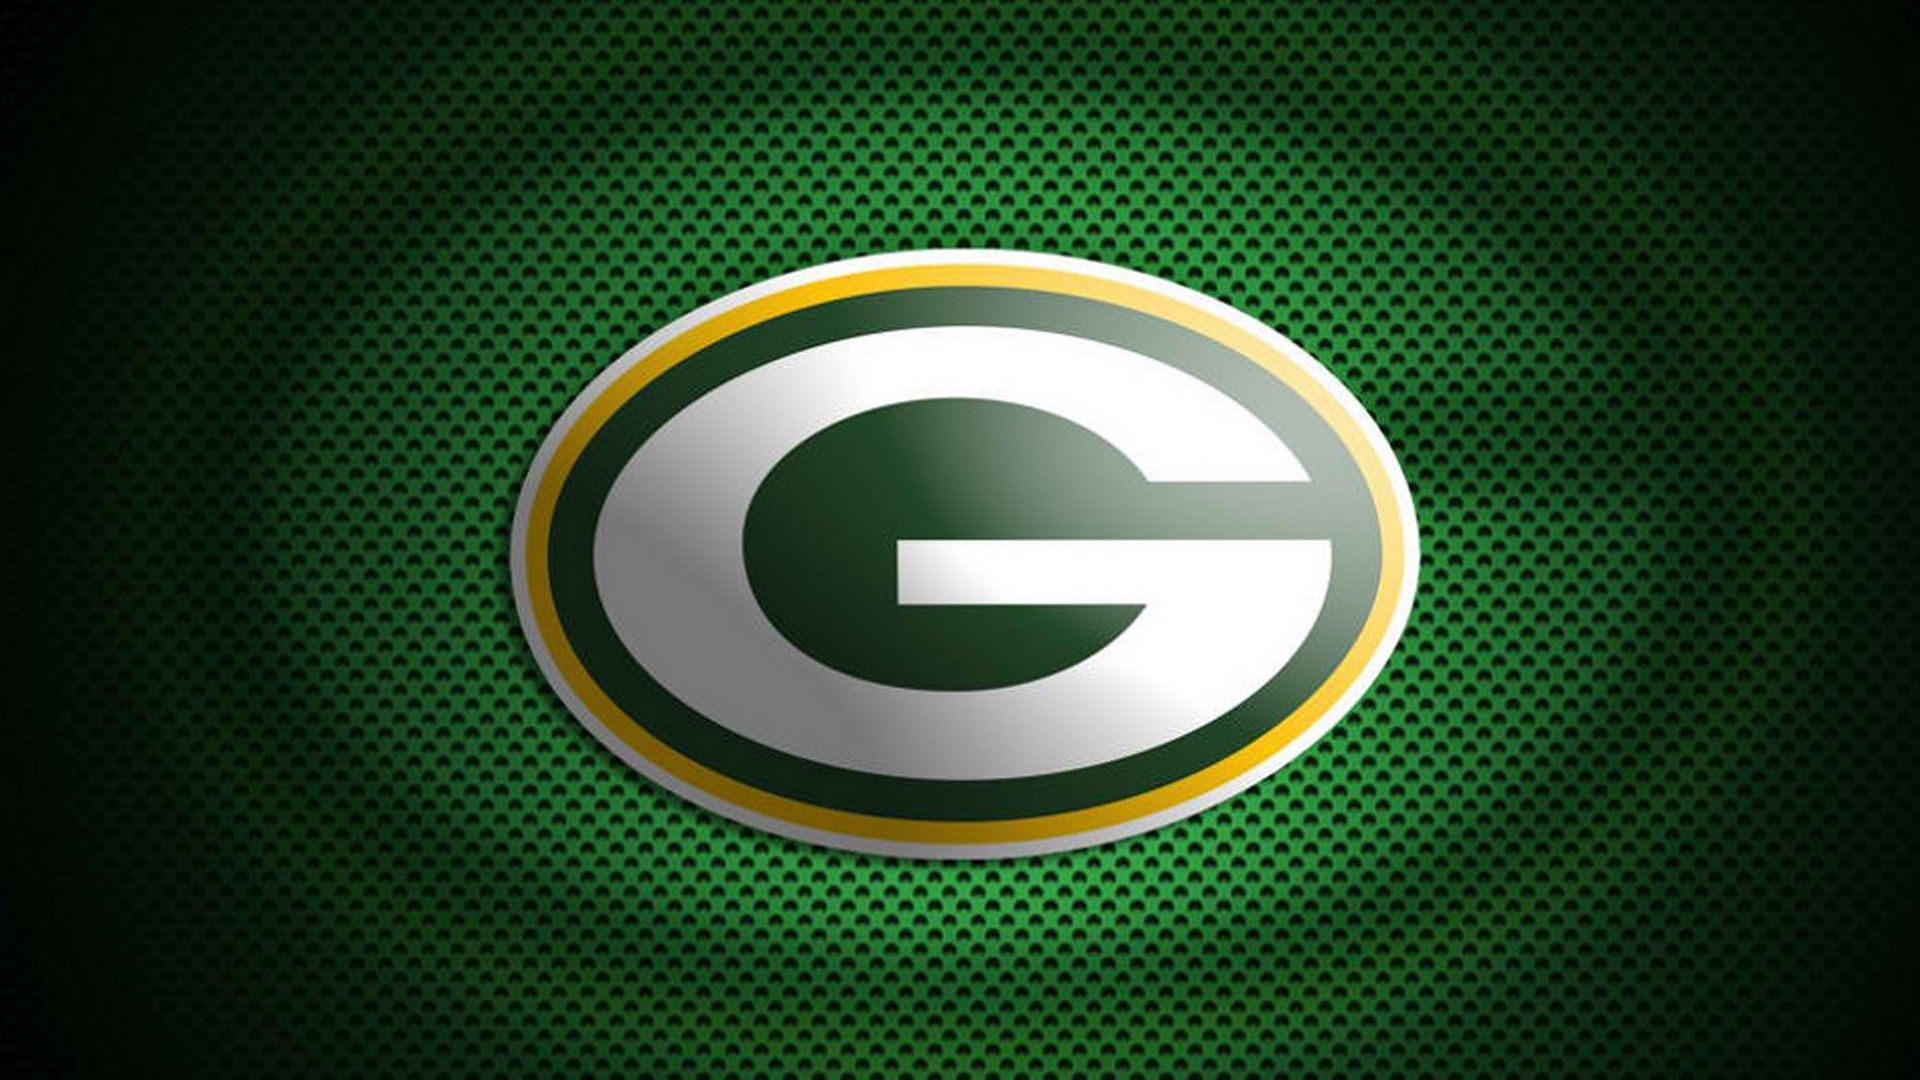 Nfl Wallpapers Green Bay Packers Wallpaper Green Bay Packers Green Bay